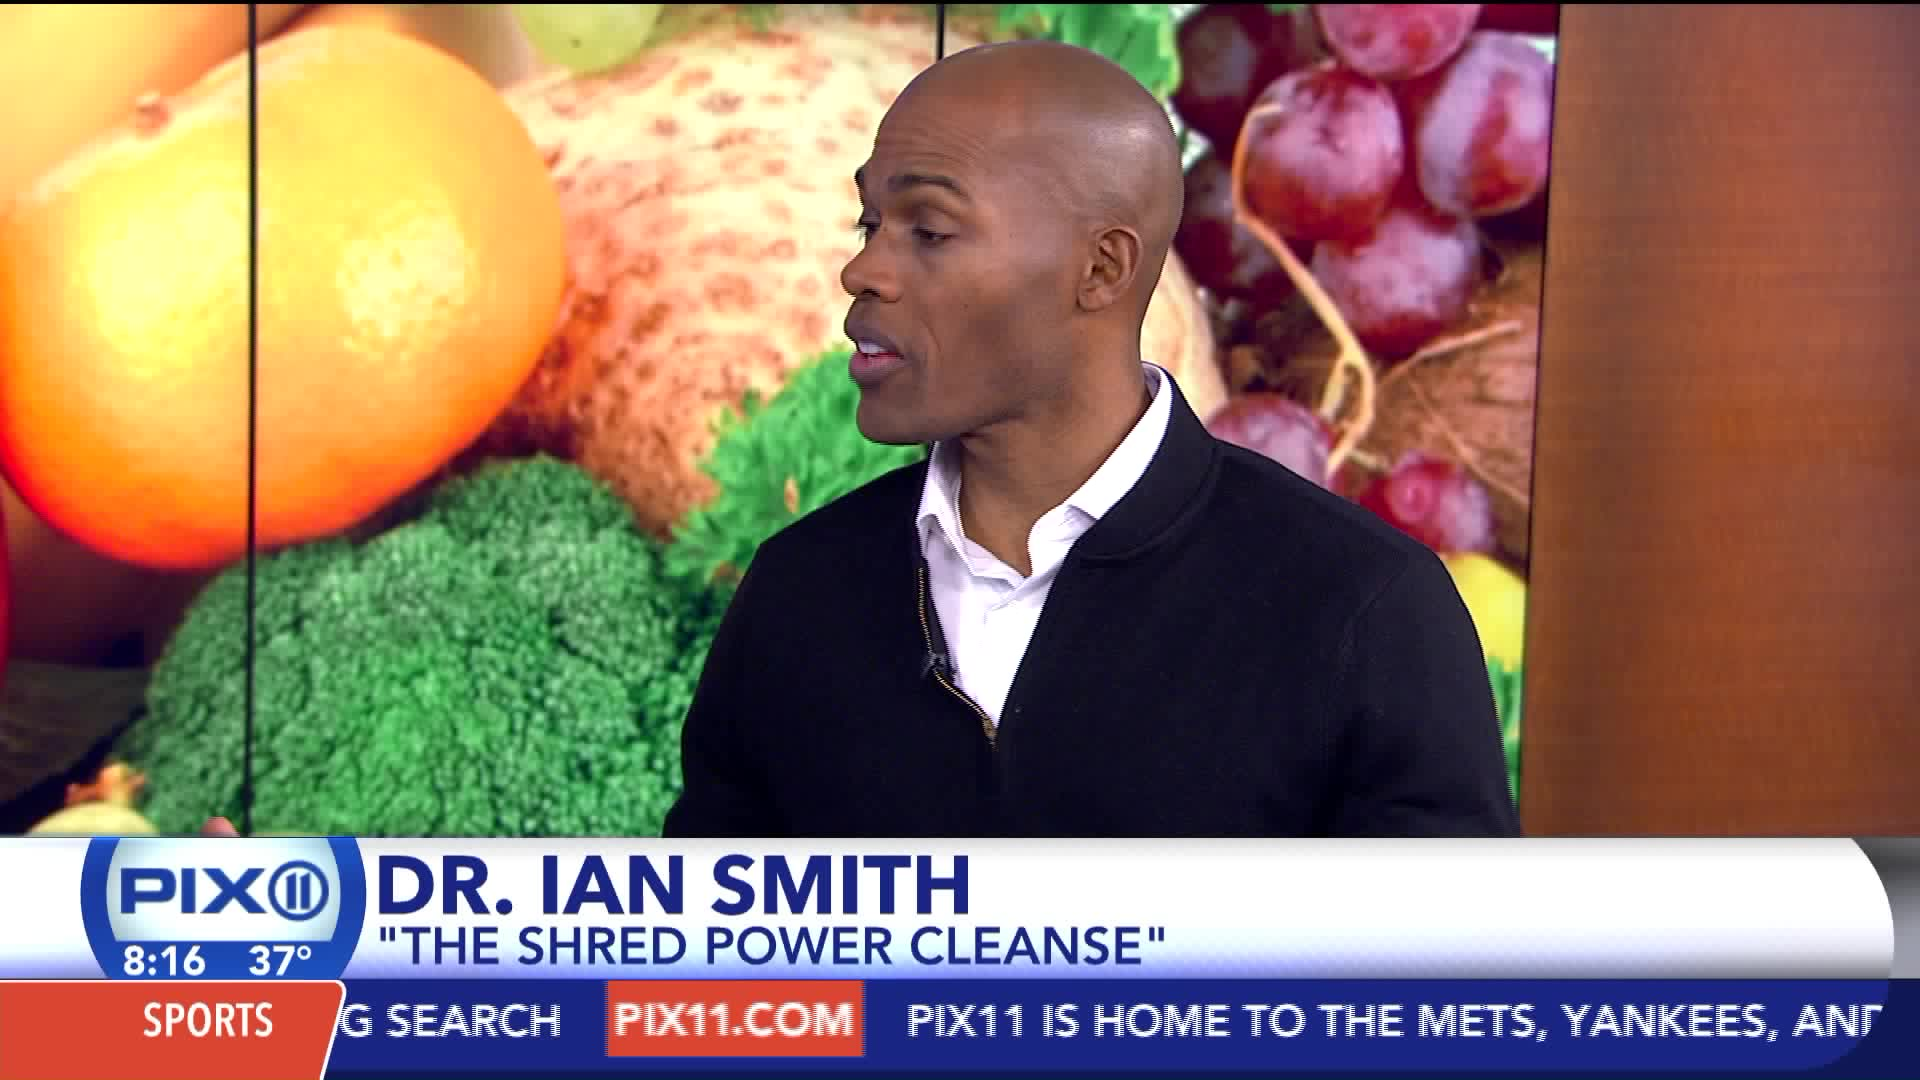 Expert Reveals Tips To Eat Clean, Get Lean